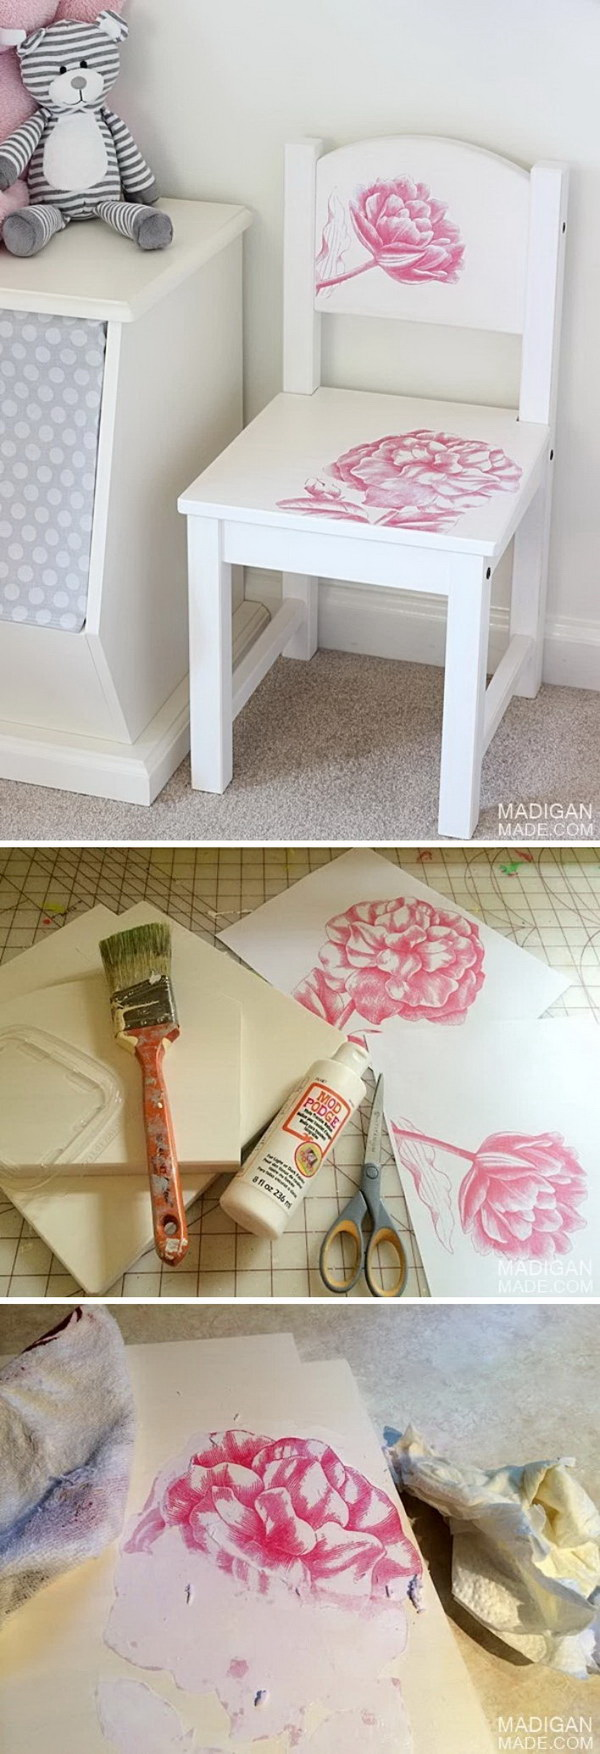 Vintage IKEA Chair Hack With Photo Transfer.